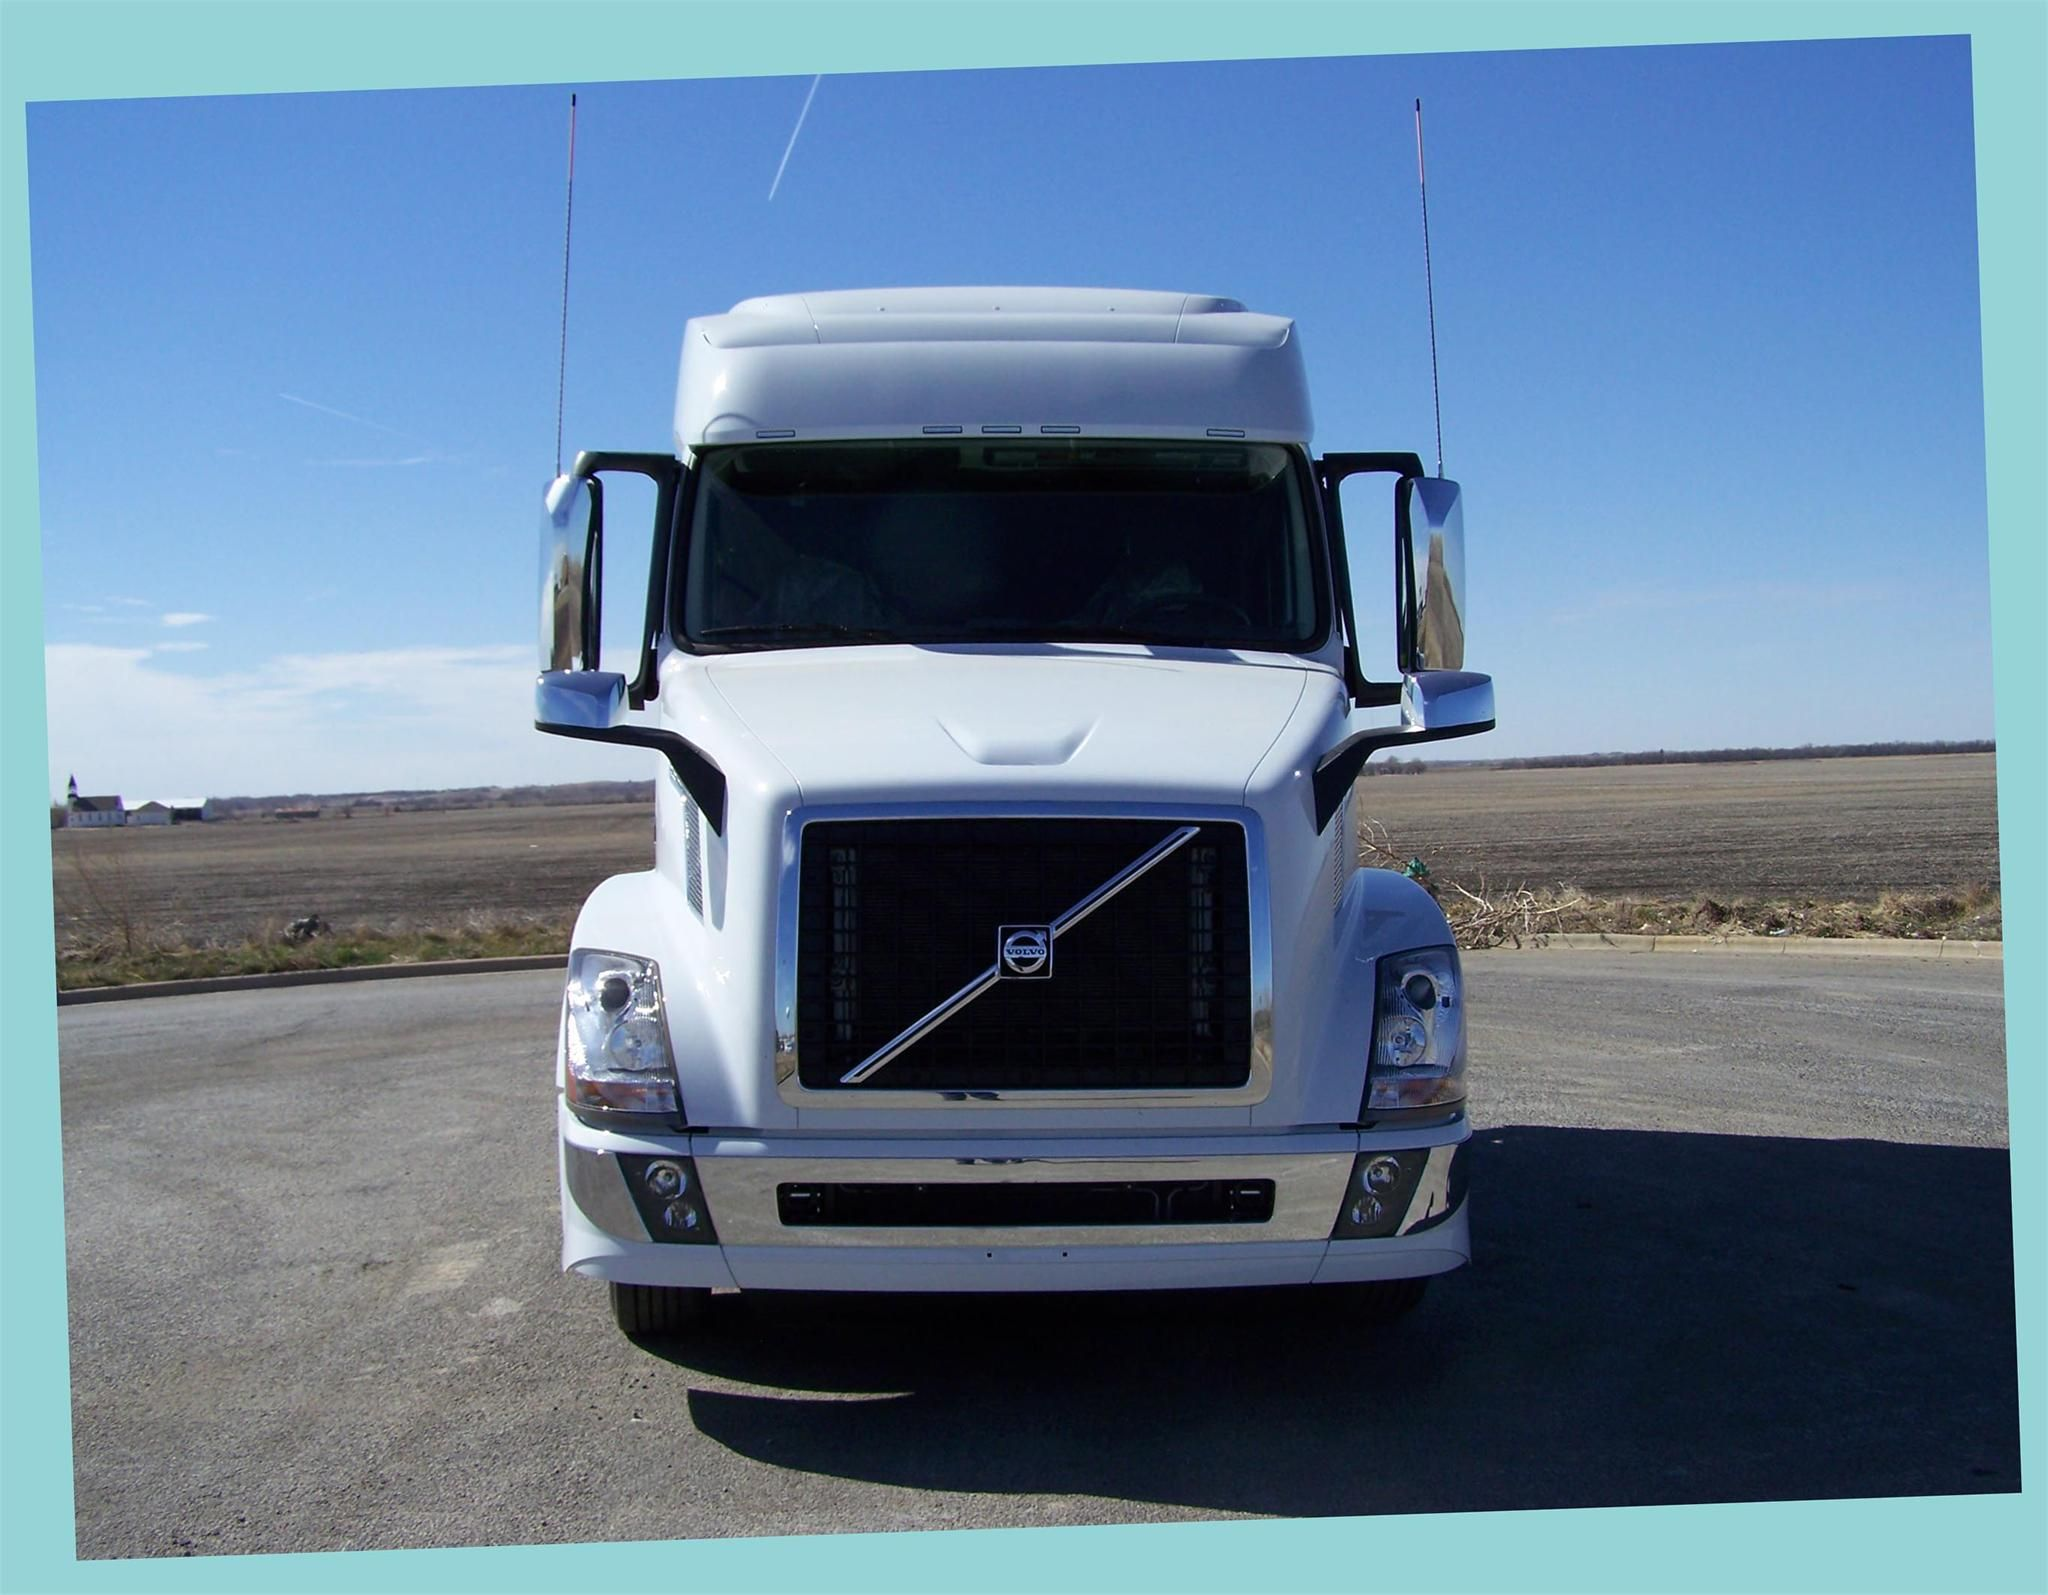 find new and used trucks from summit s hug inventory summit has a large selection of new and used trucks in inventory to choose from